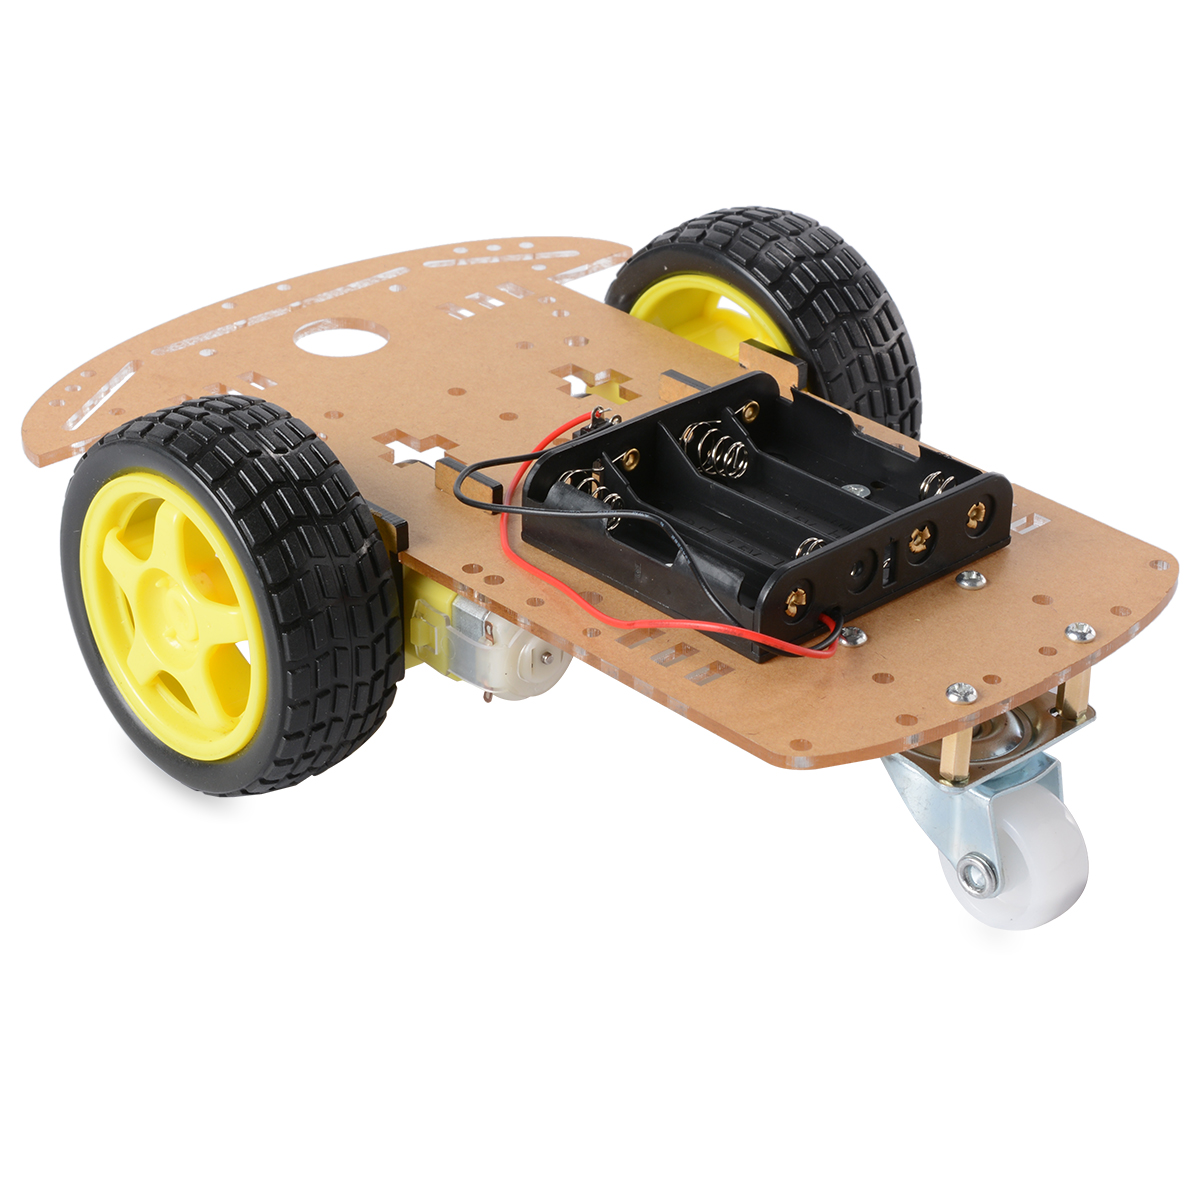 Smart robot car chassis tracing kit speed encoder wheel